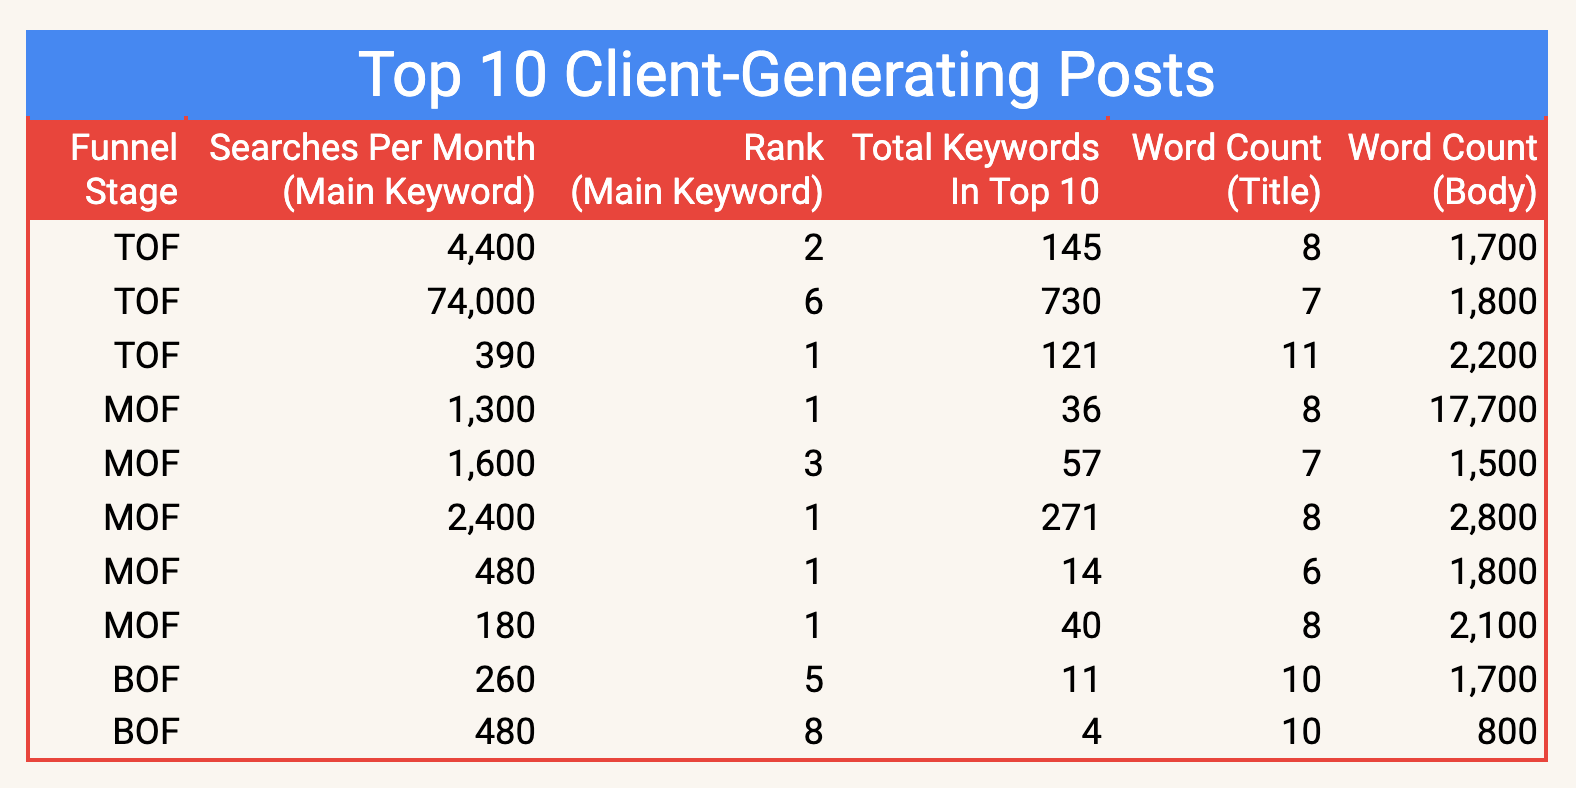 Top 10 client-generating posts